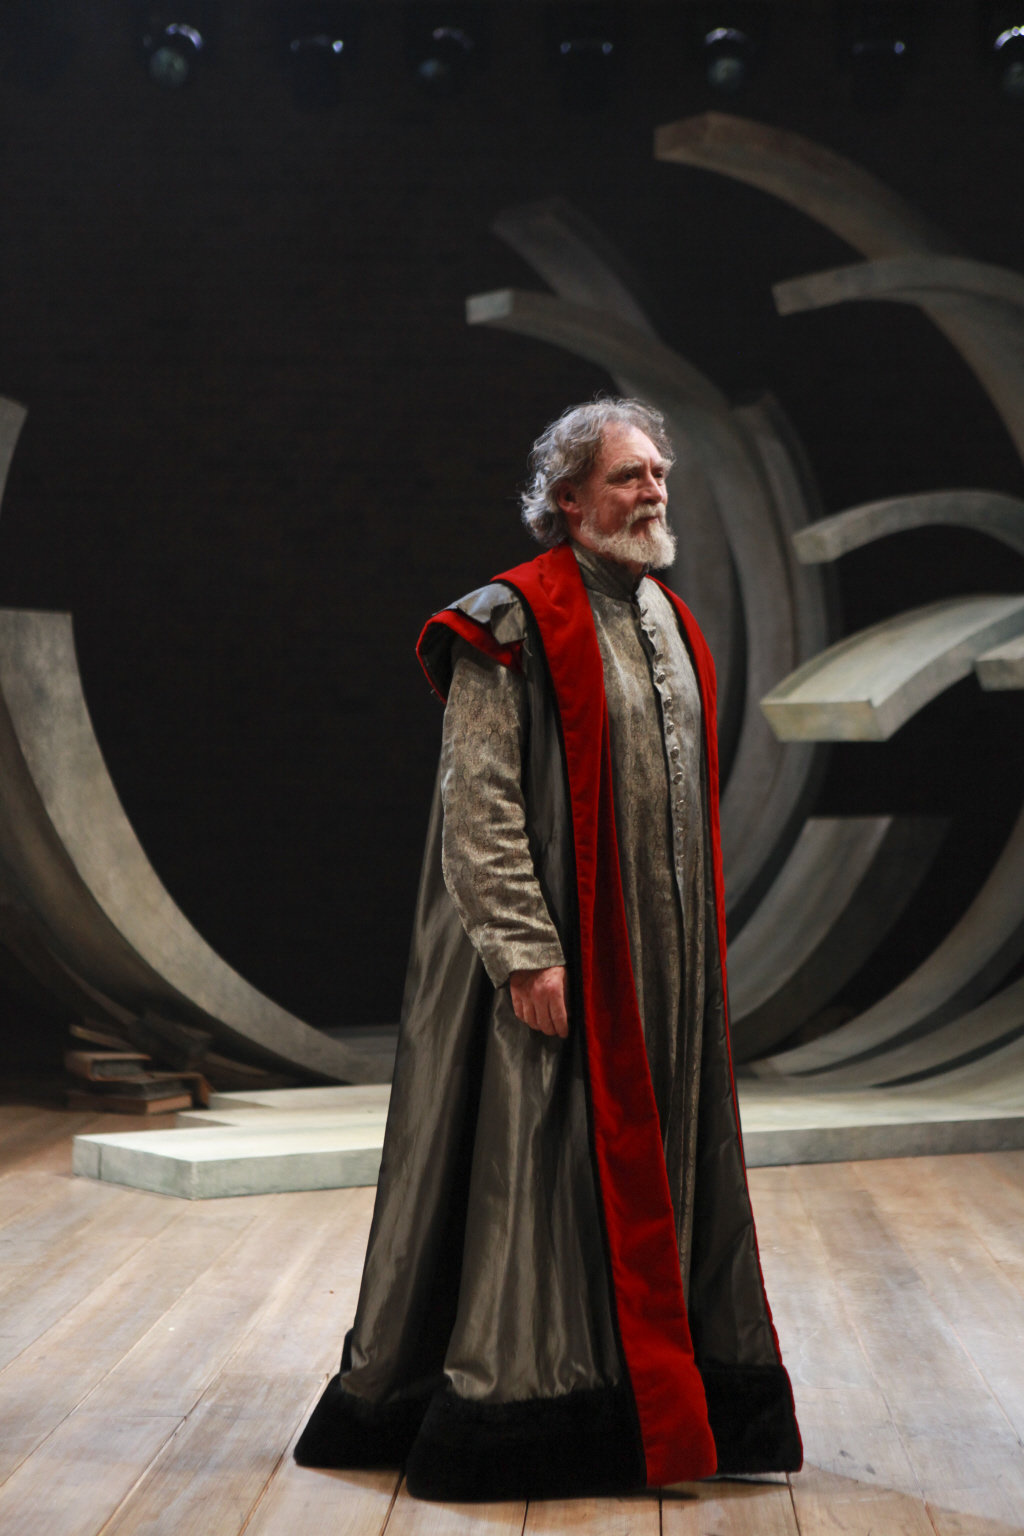 Prospero in a long robe with red trimmings.